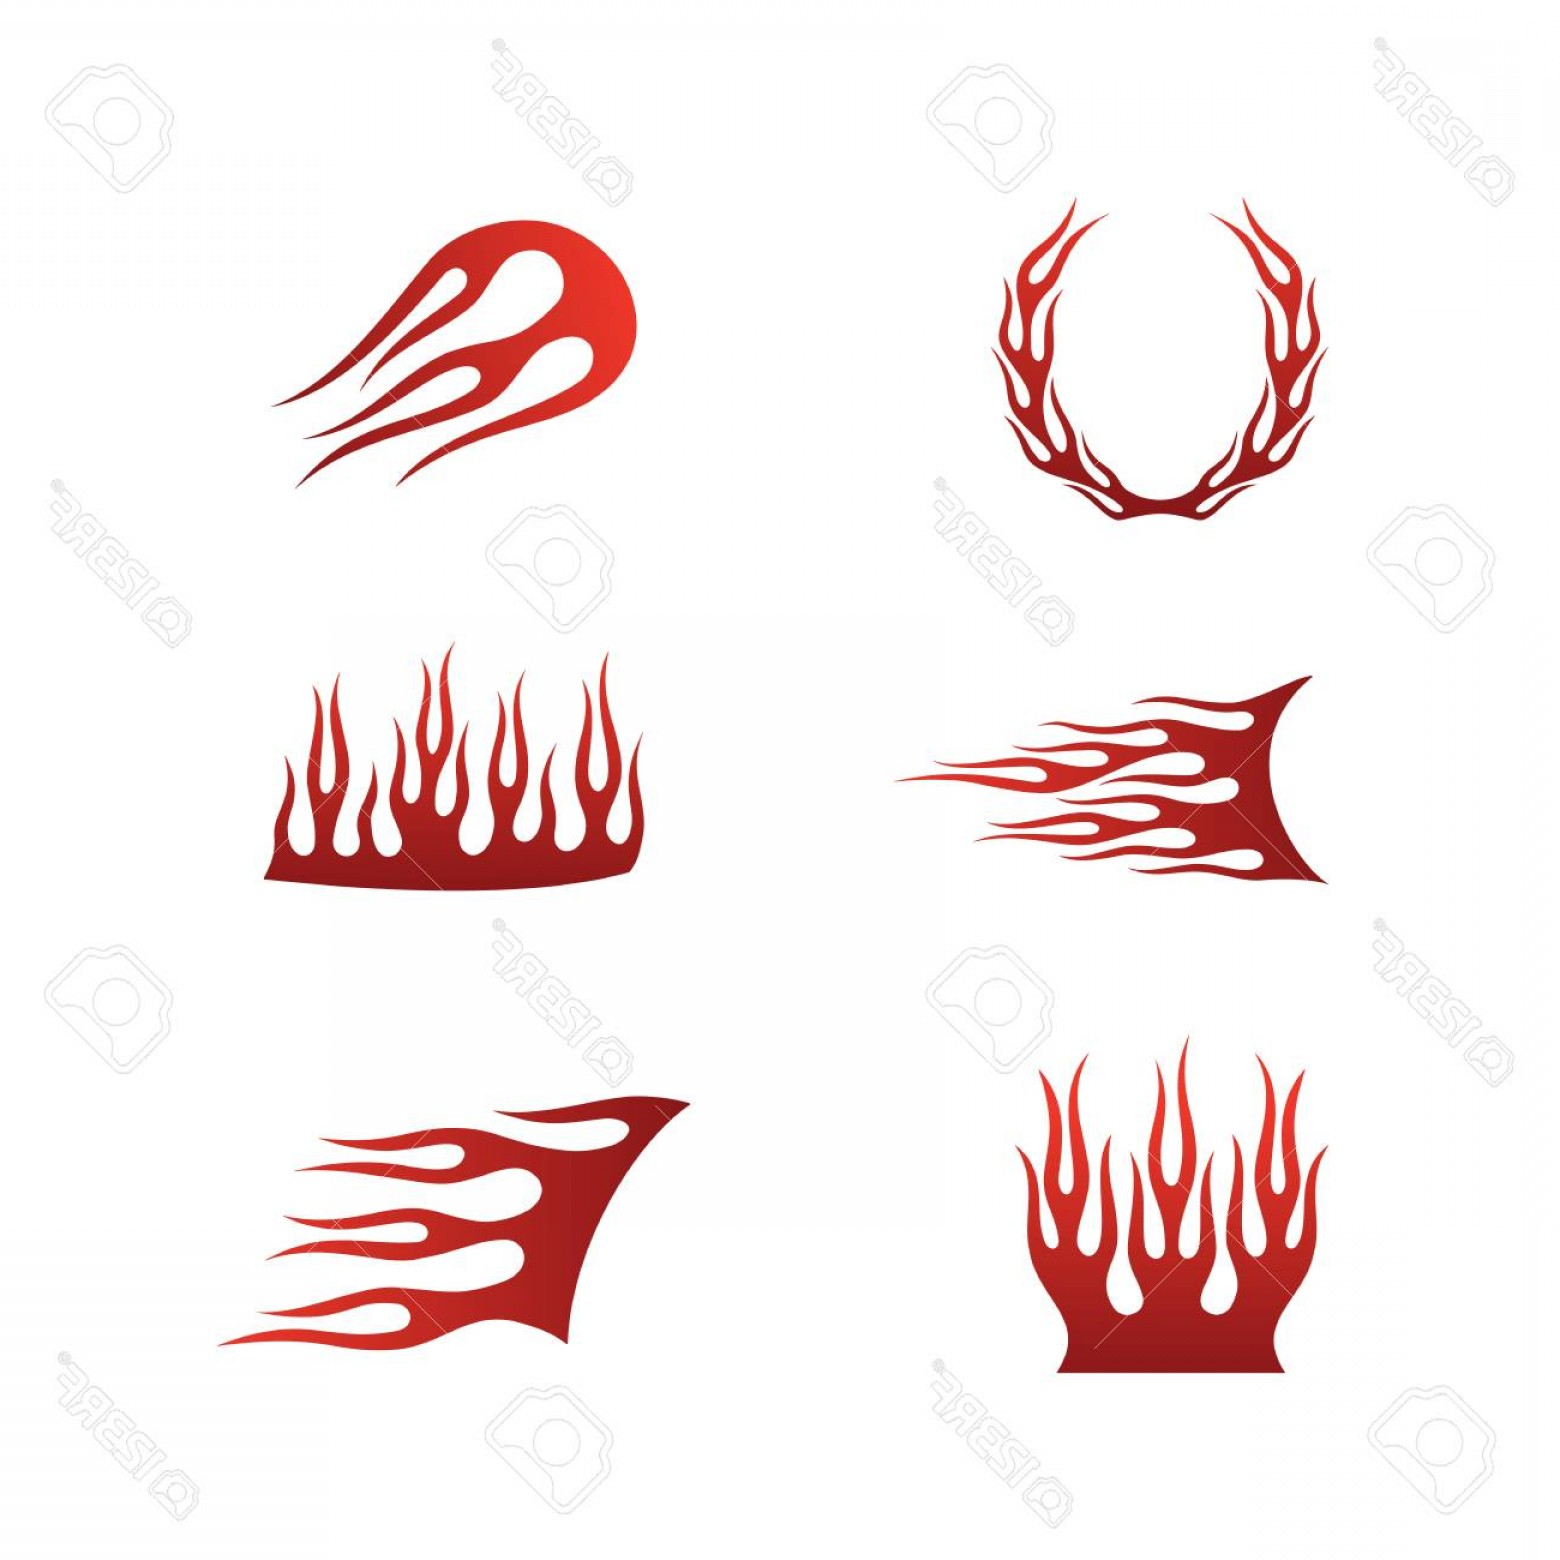 Tribal Flames Vector Car: Photostock Vector Fire Flames In Tribal Style For Tattoo Vehicle And T Shirt Decoration Design Vehicle Graphics Stripe